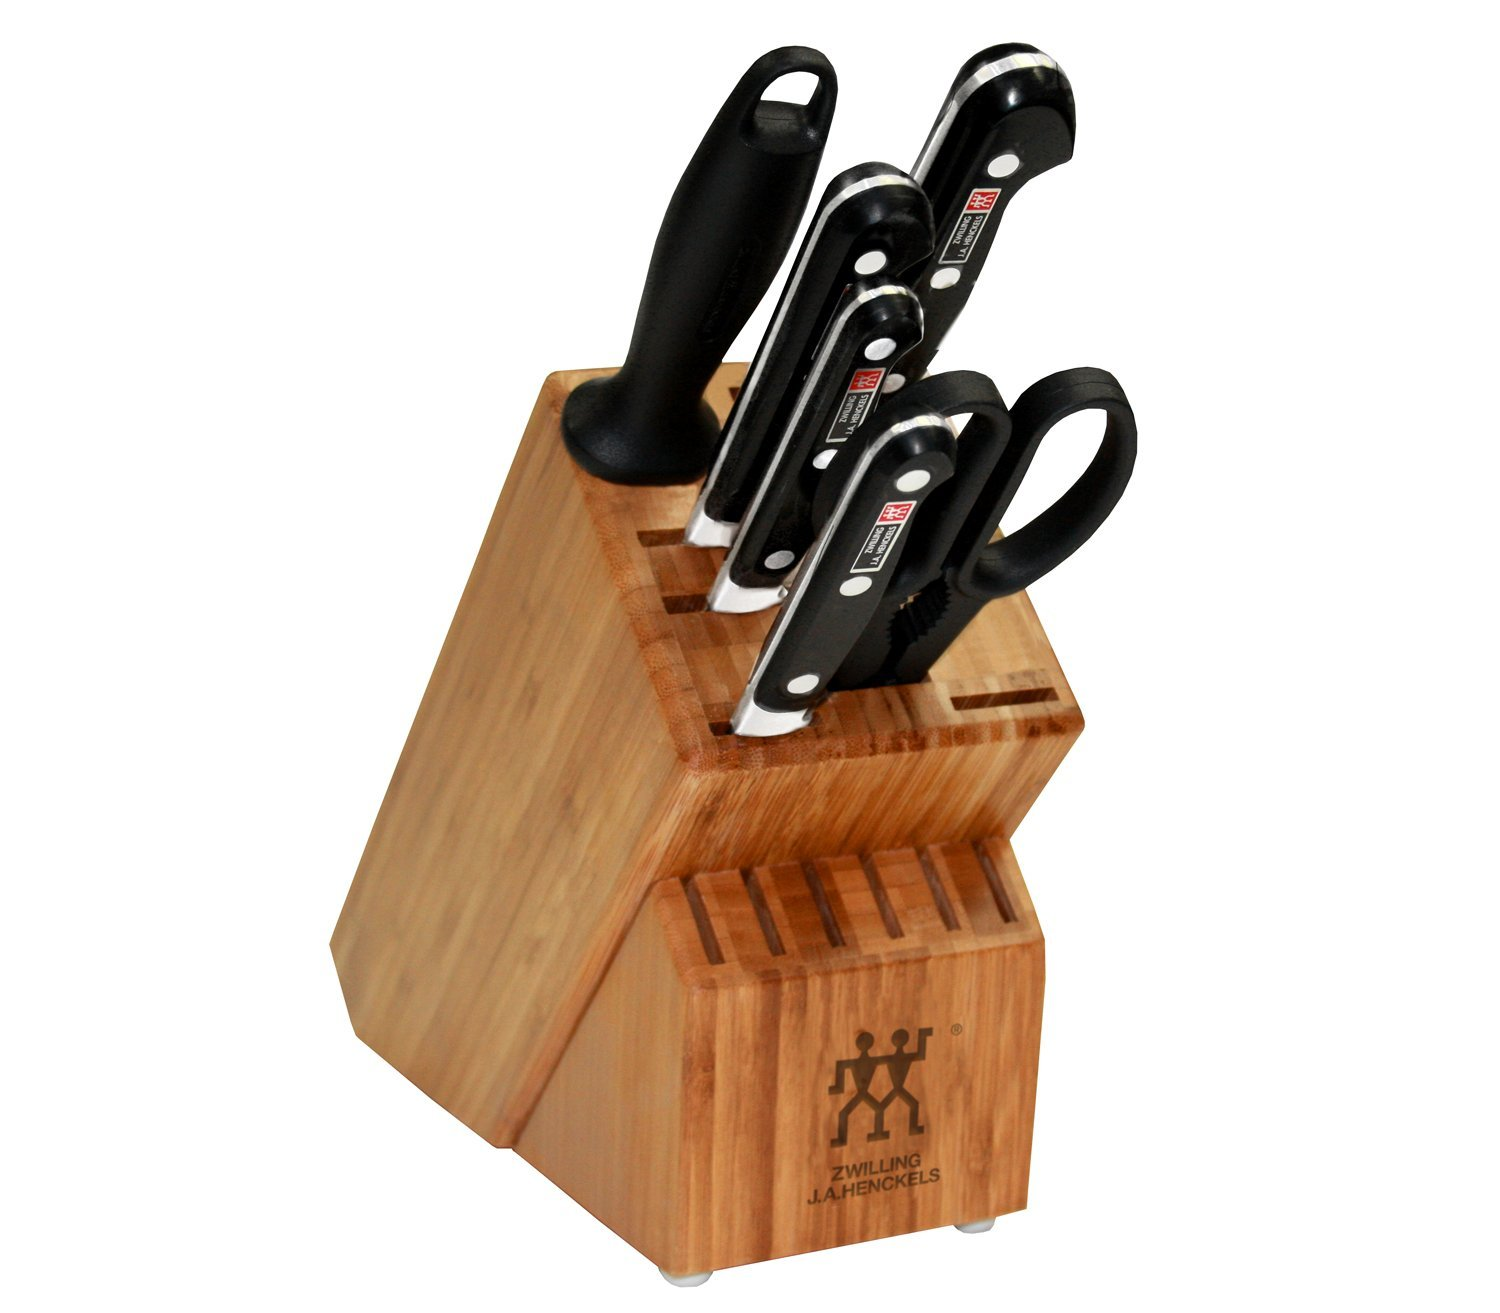 Zwilling J.A. Henckels Twin Pro S 7 Piece Knife Set With Block